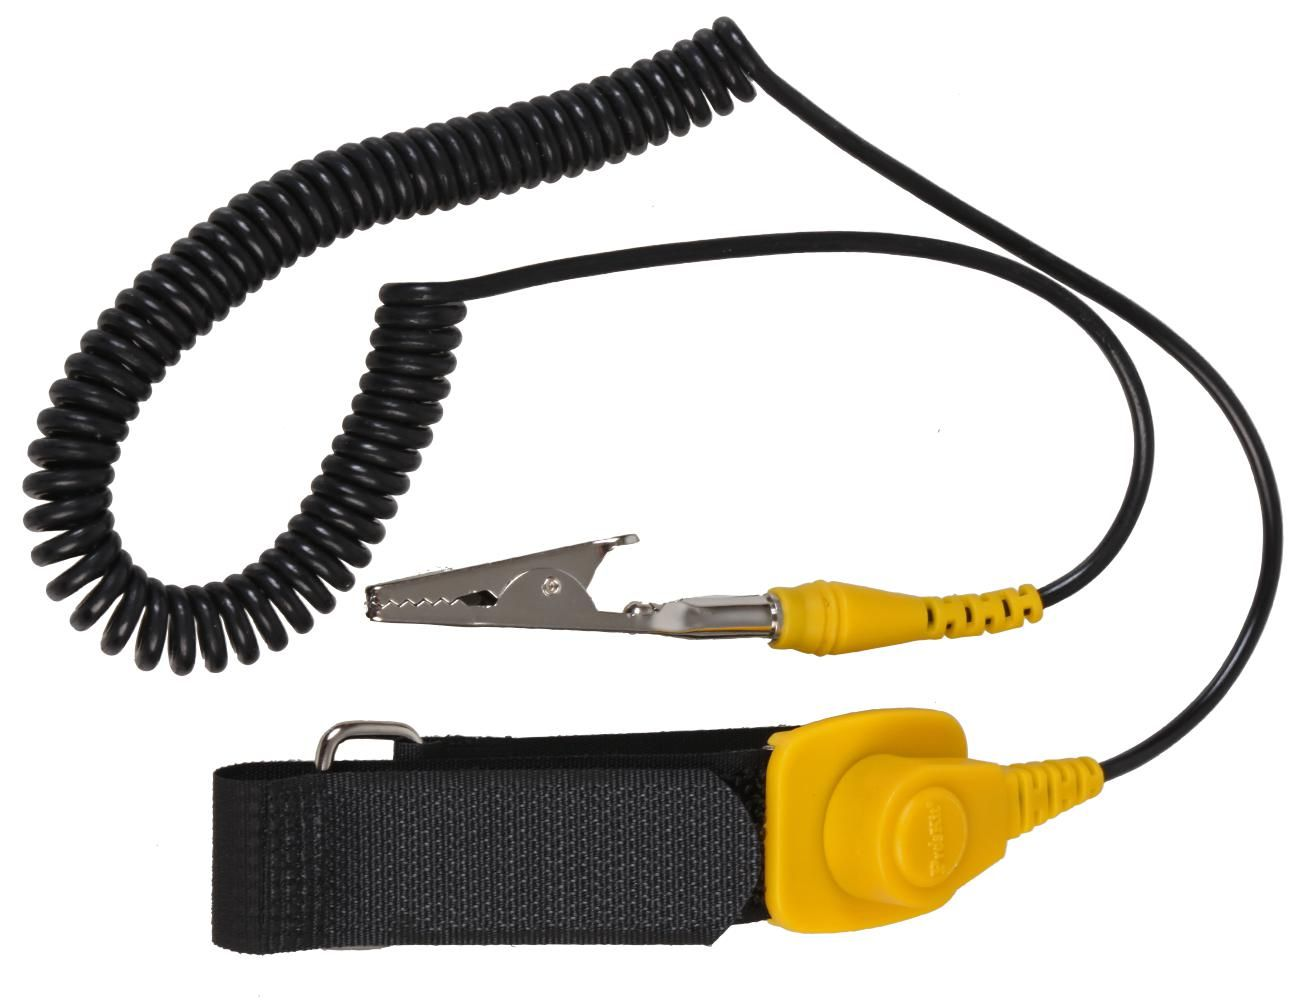 DURATOOL D03000  Wrist Strap 6Ft Hook & Loop